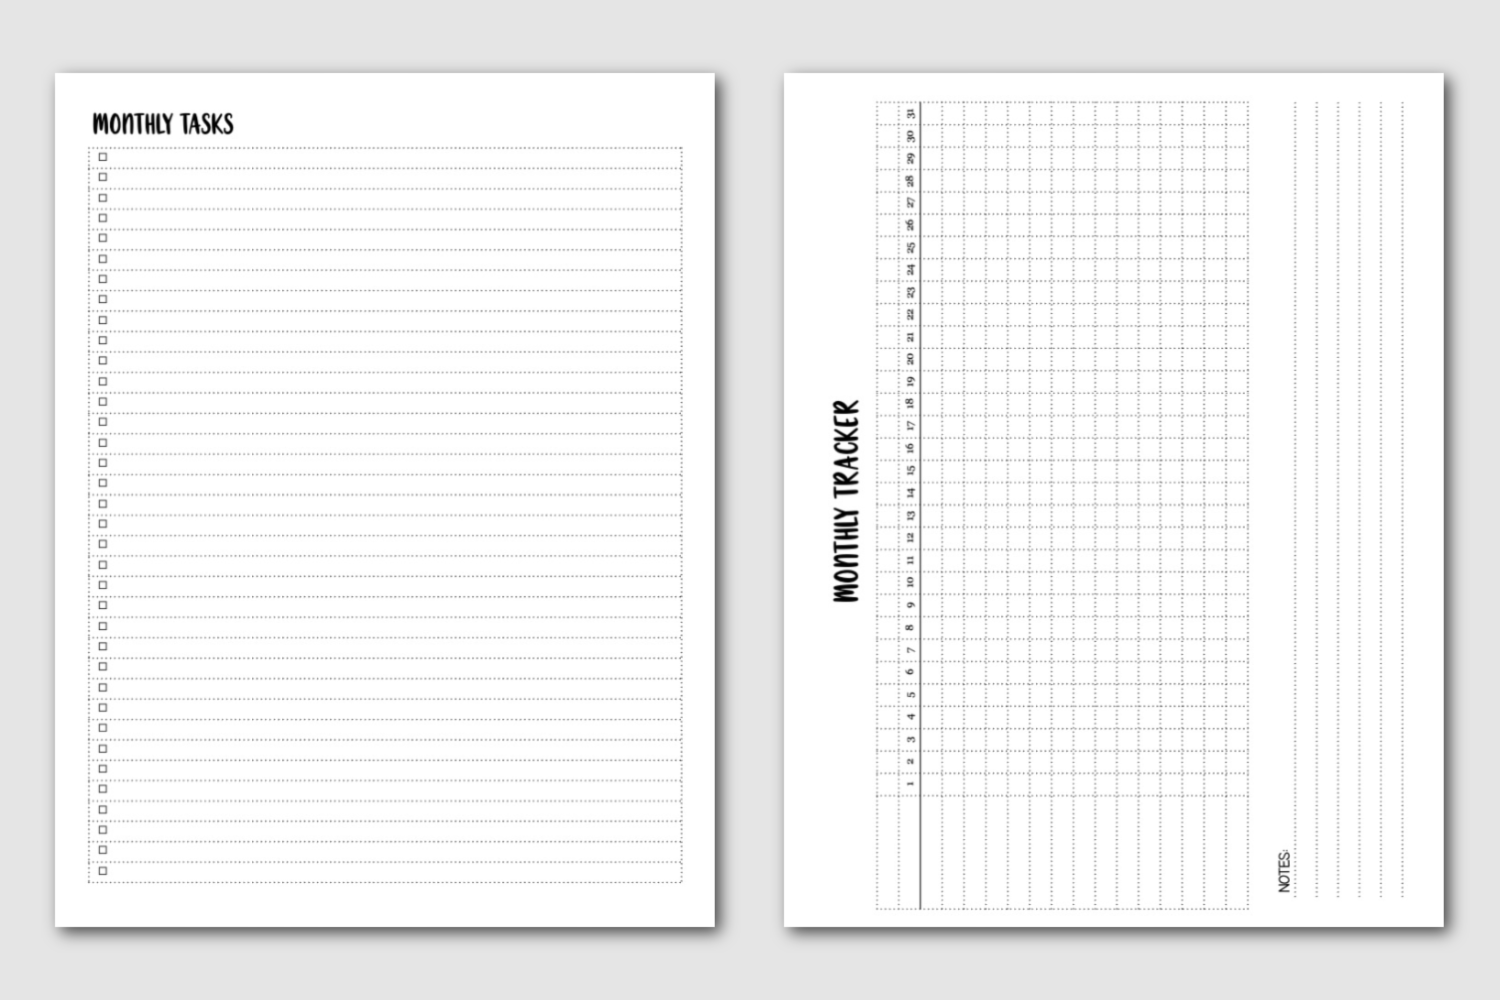 Monthly Tasks and Habits - Semi-Annual Master Planner